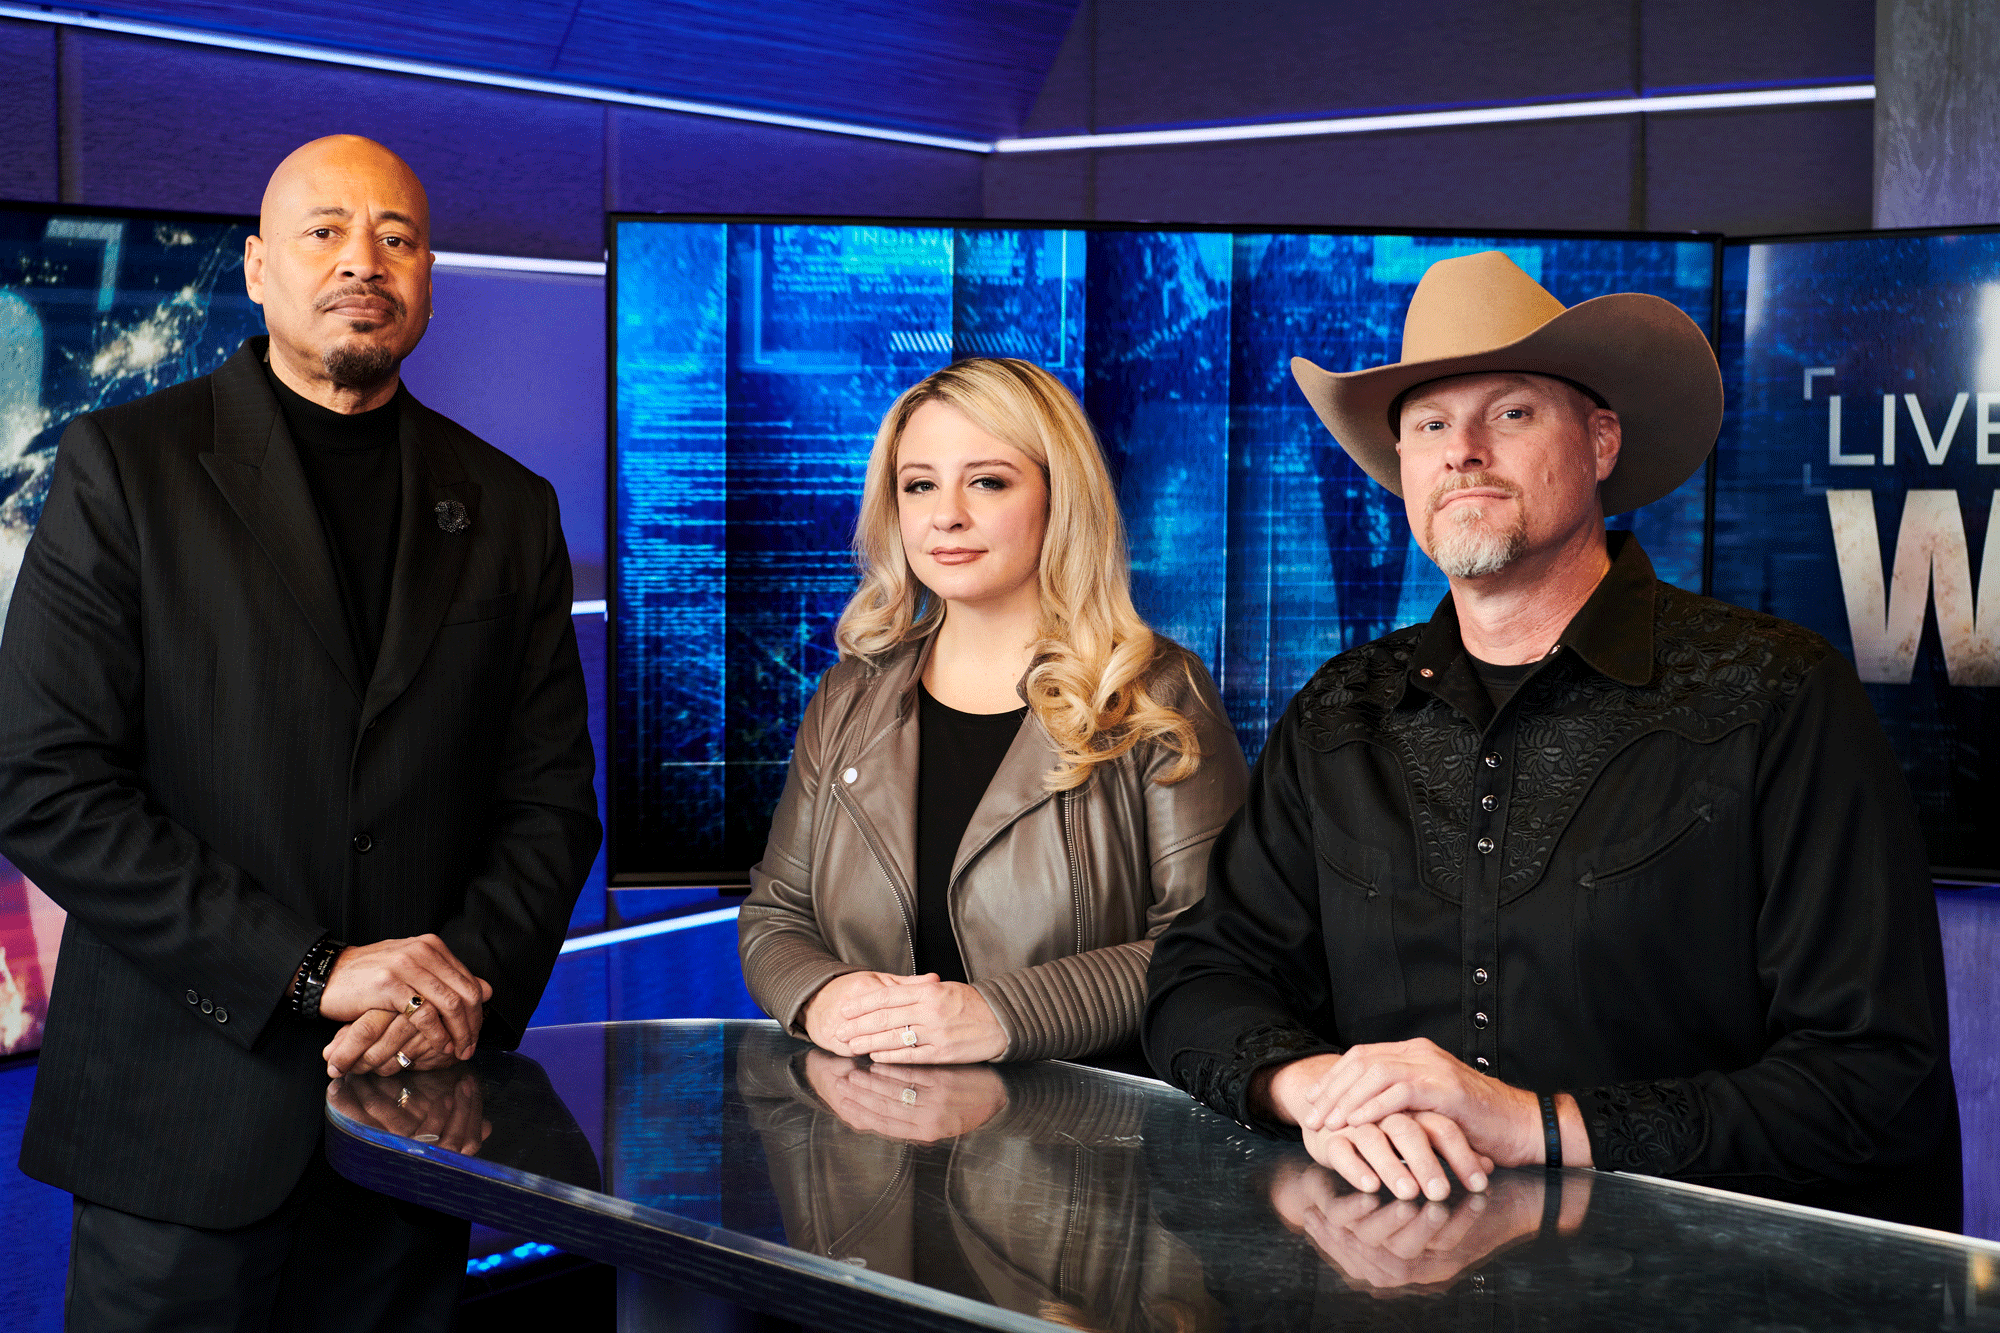 Michelle Sigona and Sheriff Mark Lamb of 'Live PD: Wanted' on What They Find Gratifying About Working on the Show